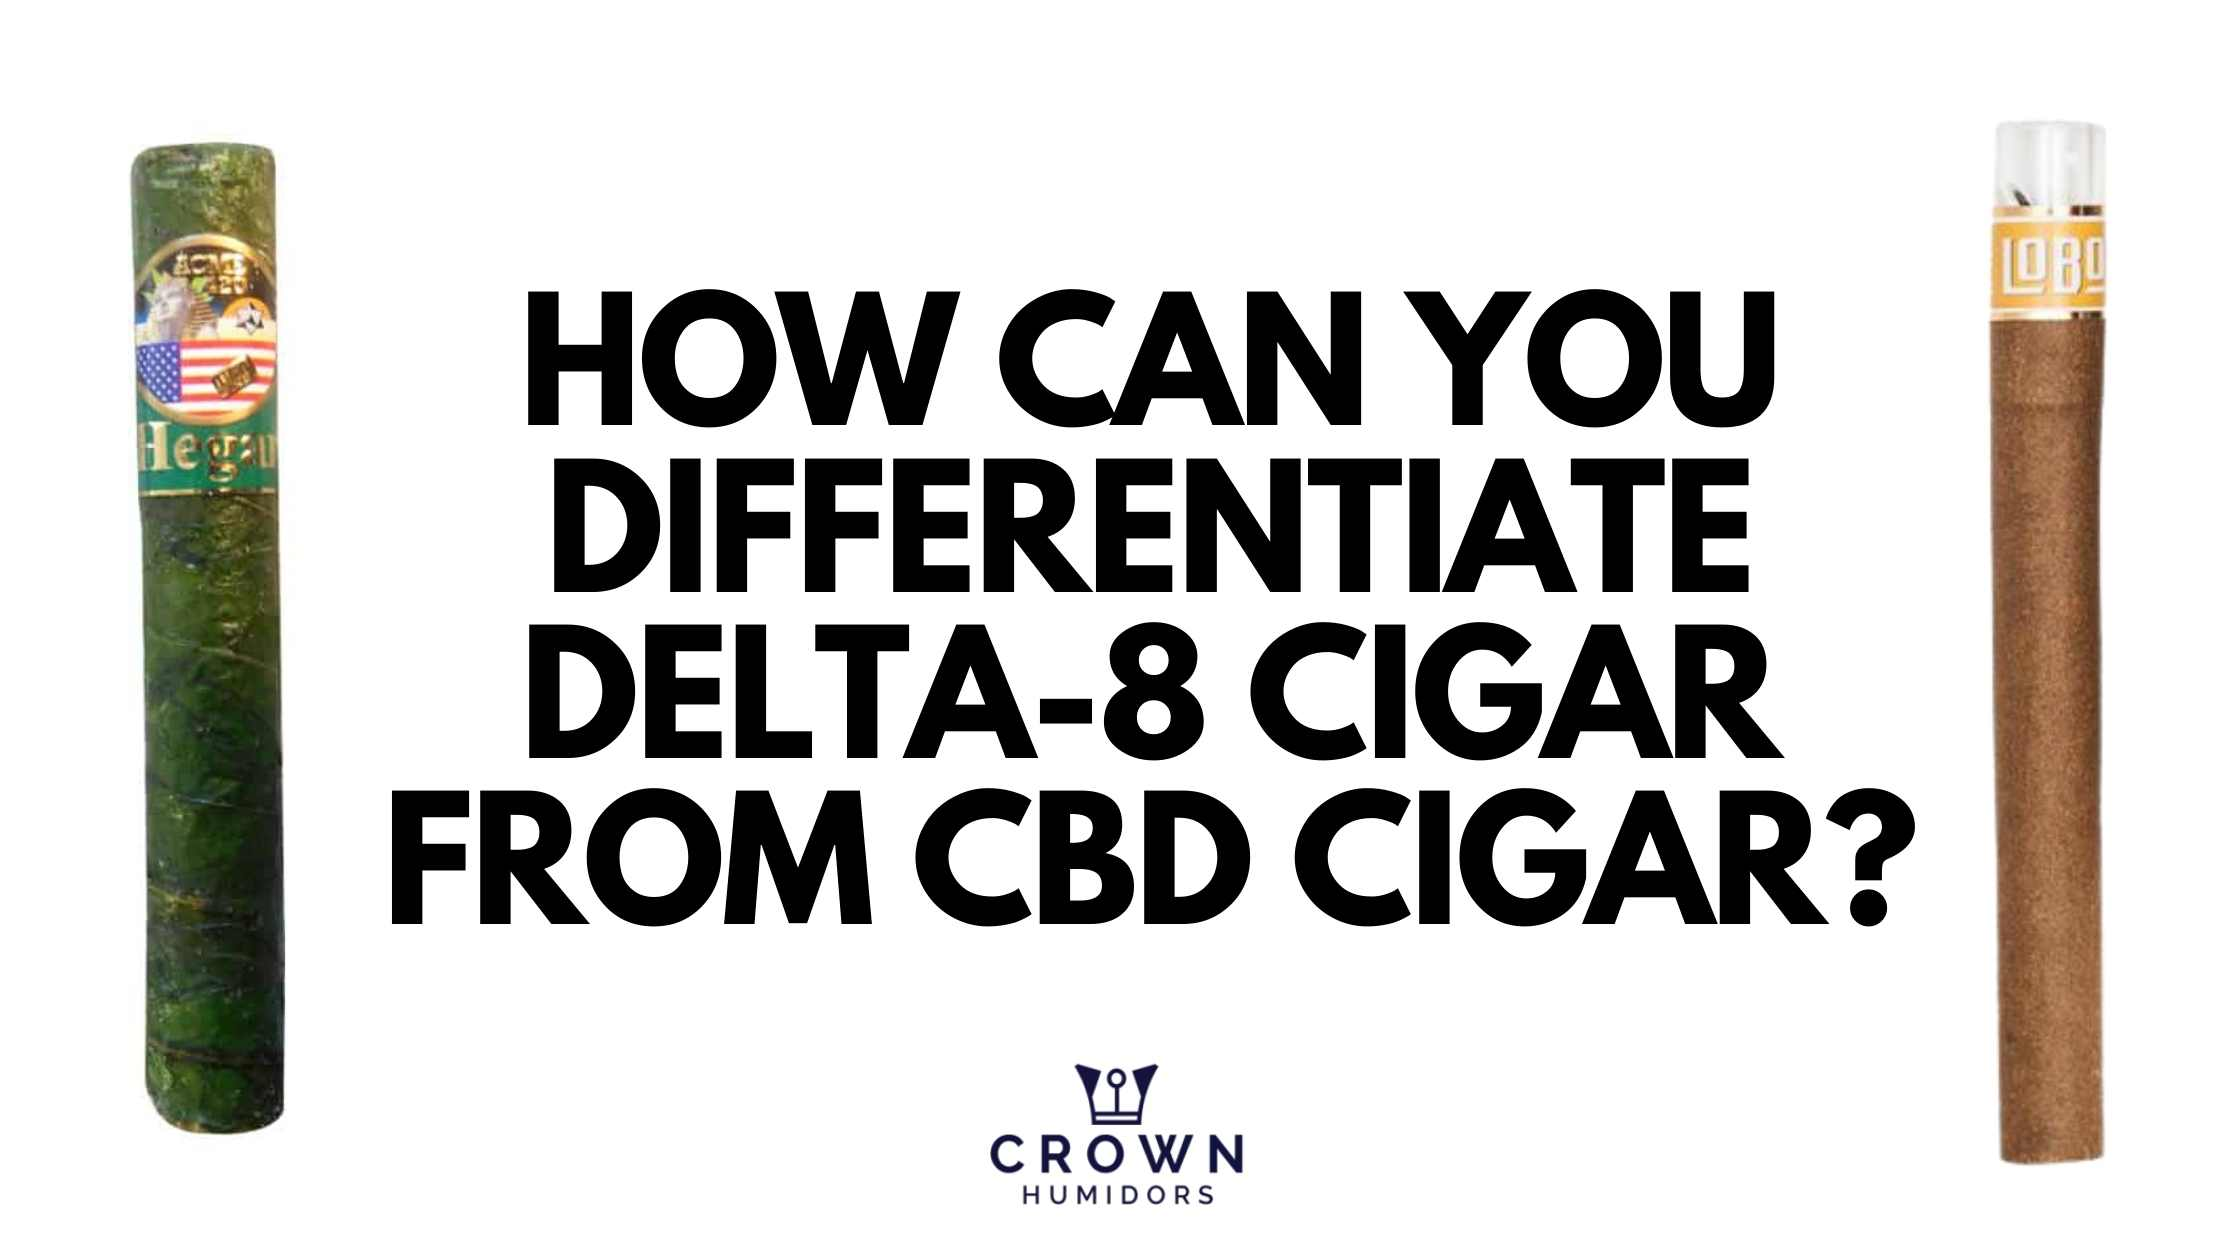 HOW CAN YOU DIFFERENTIATE DELTA-8 CIGAR FROM CBD CIGAR?